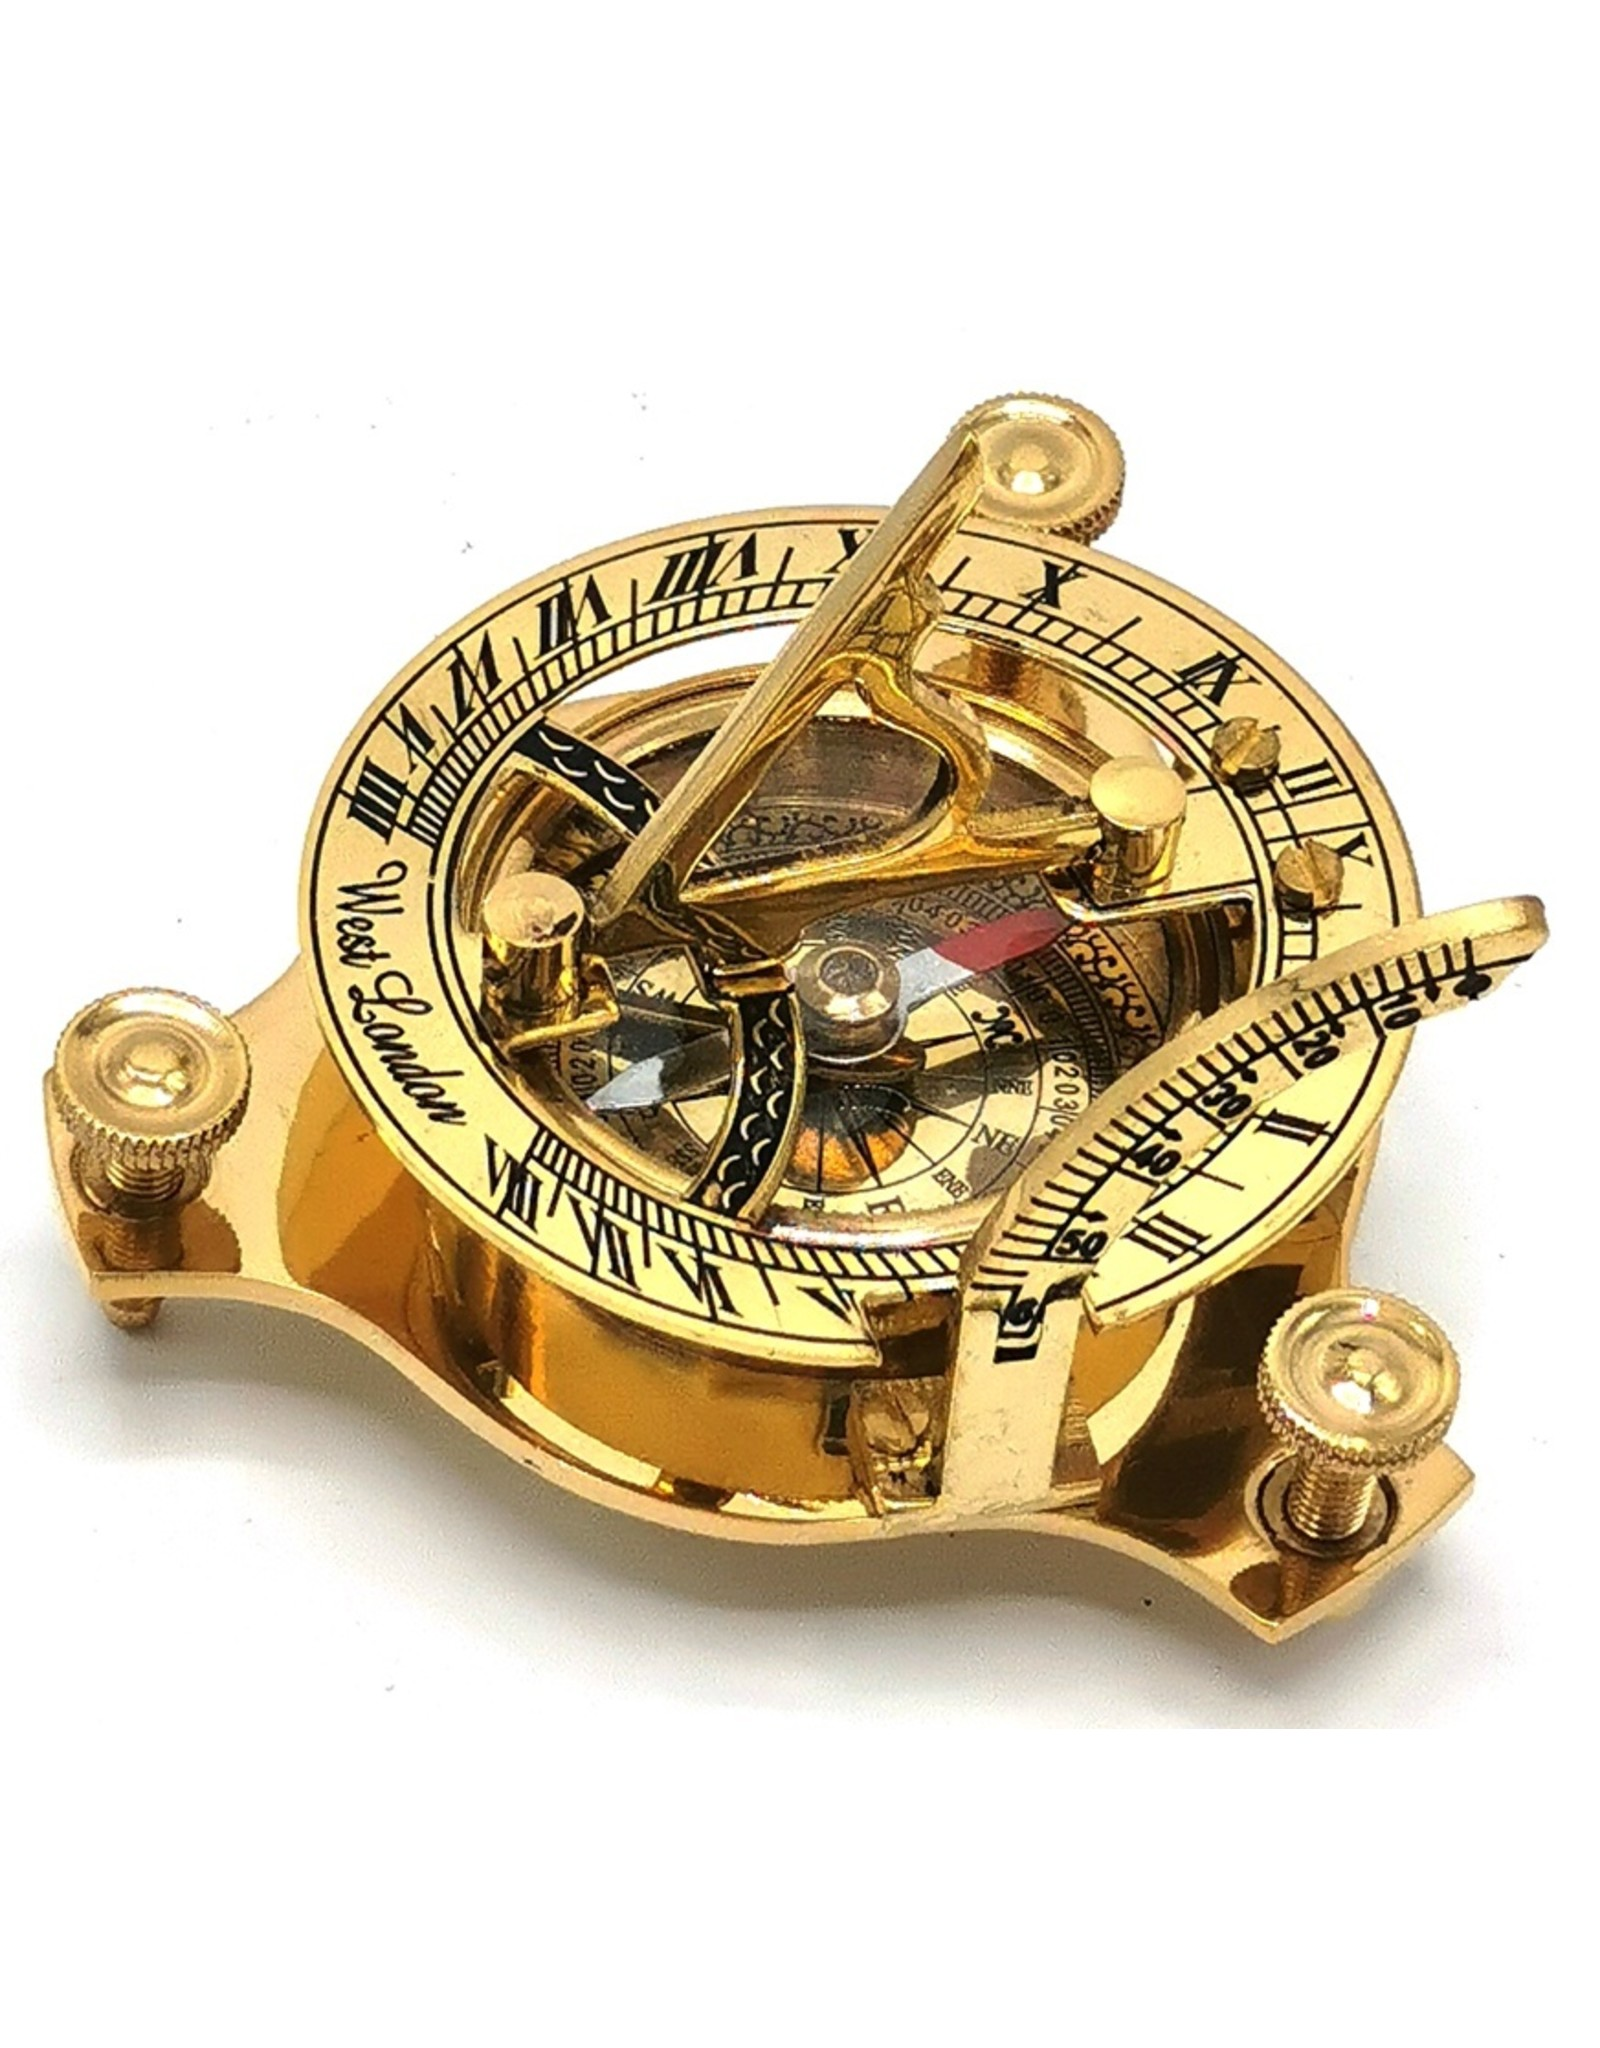 Trukado Gifrware, figurines, collectables - Compass with Sundial  (small) - brass